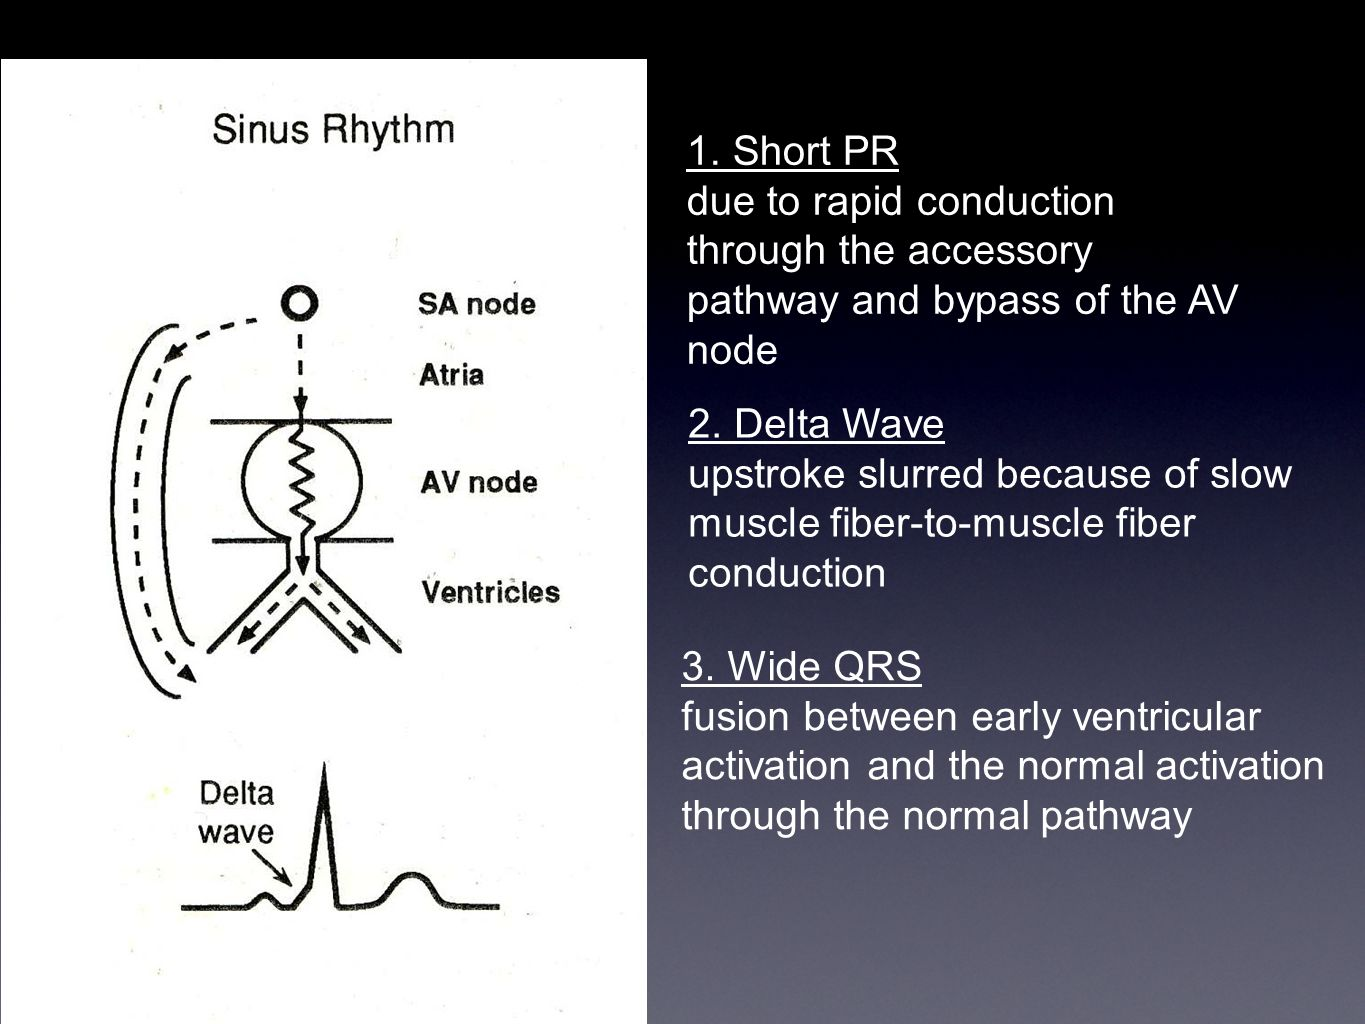 1. Short PR due to rapid conduction through the accessory pathway and bypass of the AV node. 2. Delta Wave.